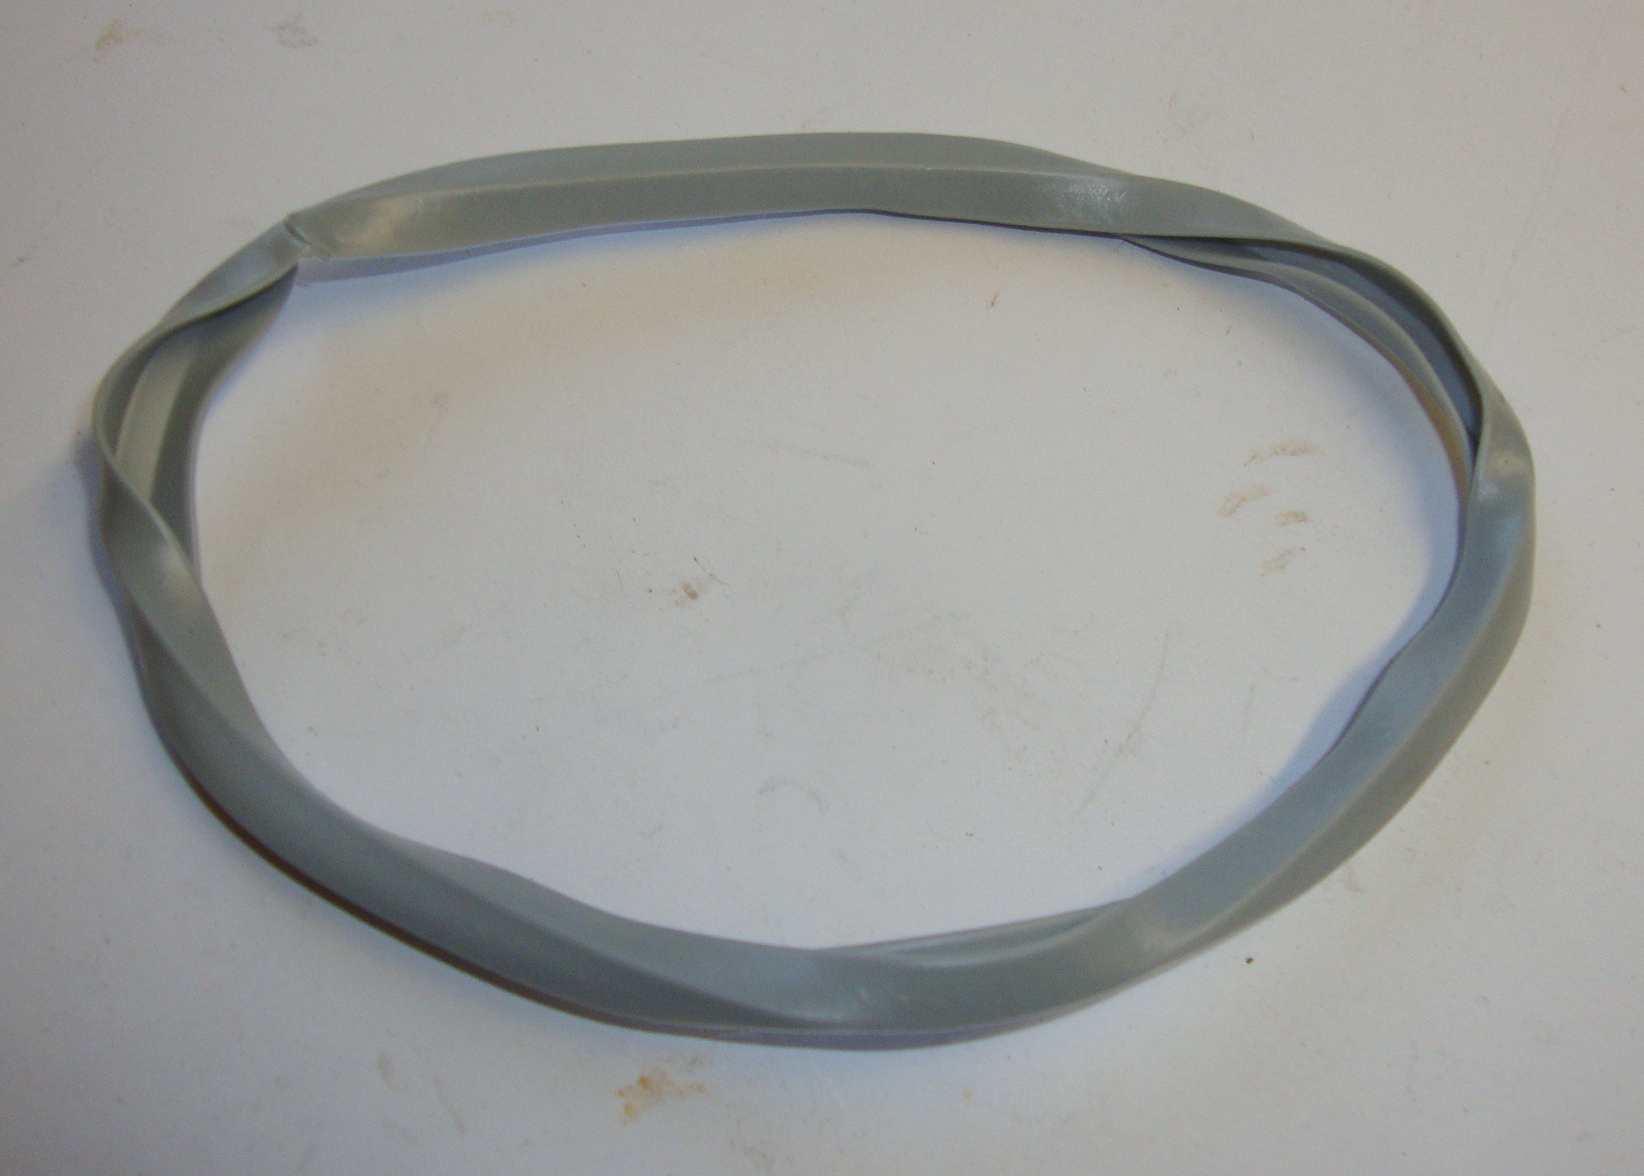 Packing for headlamp glass, HELLA, 115 mm